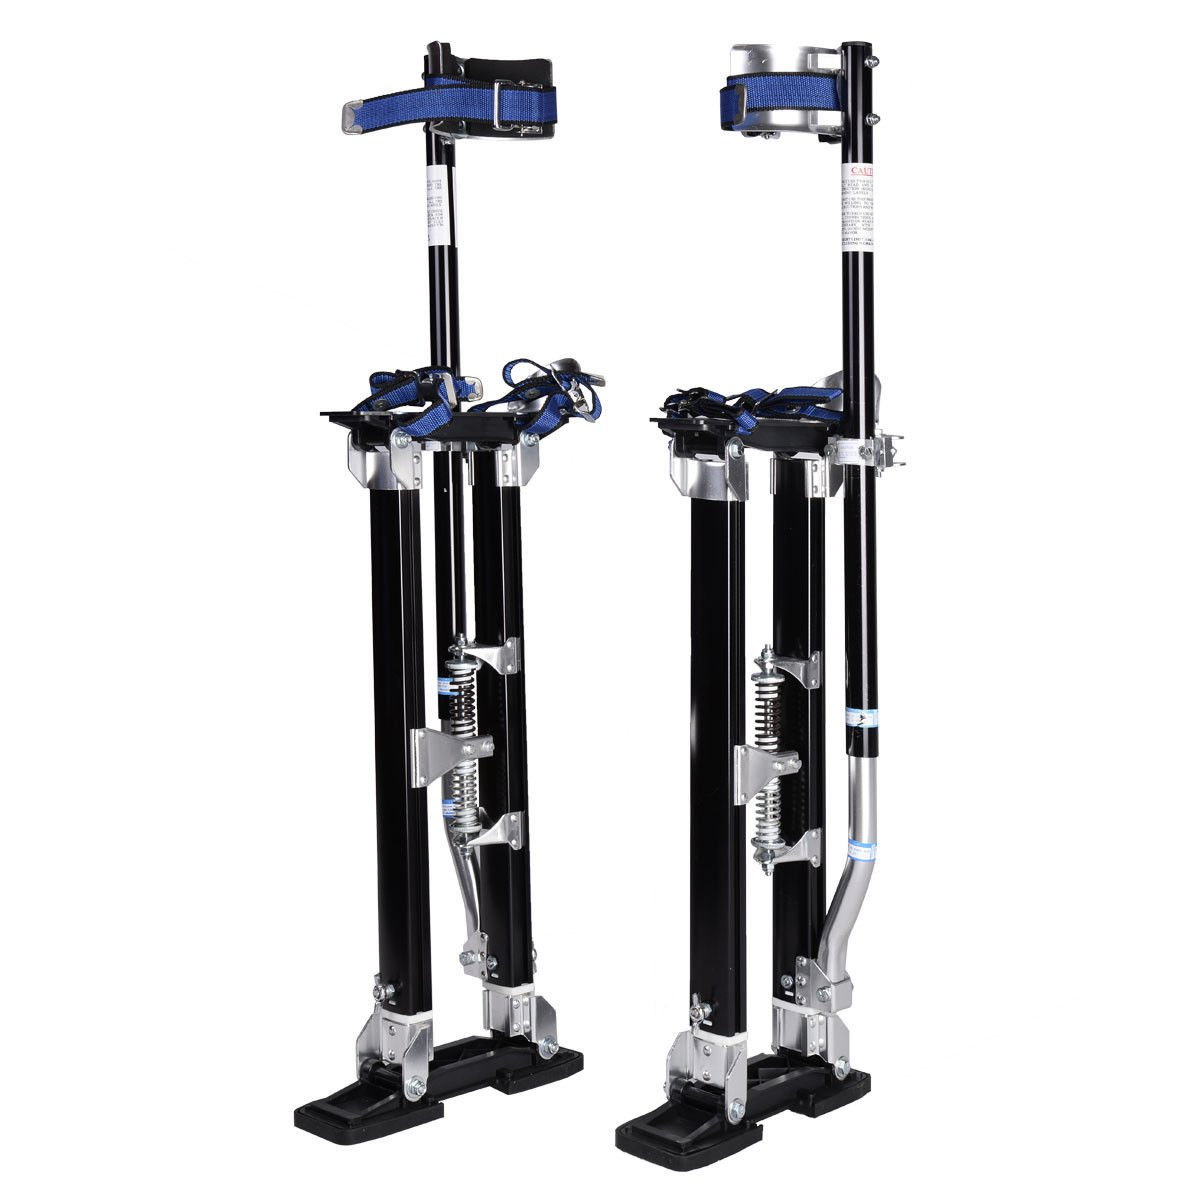 24-40 Inch Drywall Stilts Adjustable Aluminum Stilt Walking Painting Dura Taping Painter Tools by FrankMind (Image #1)